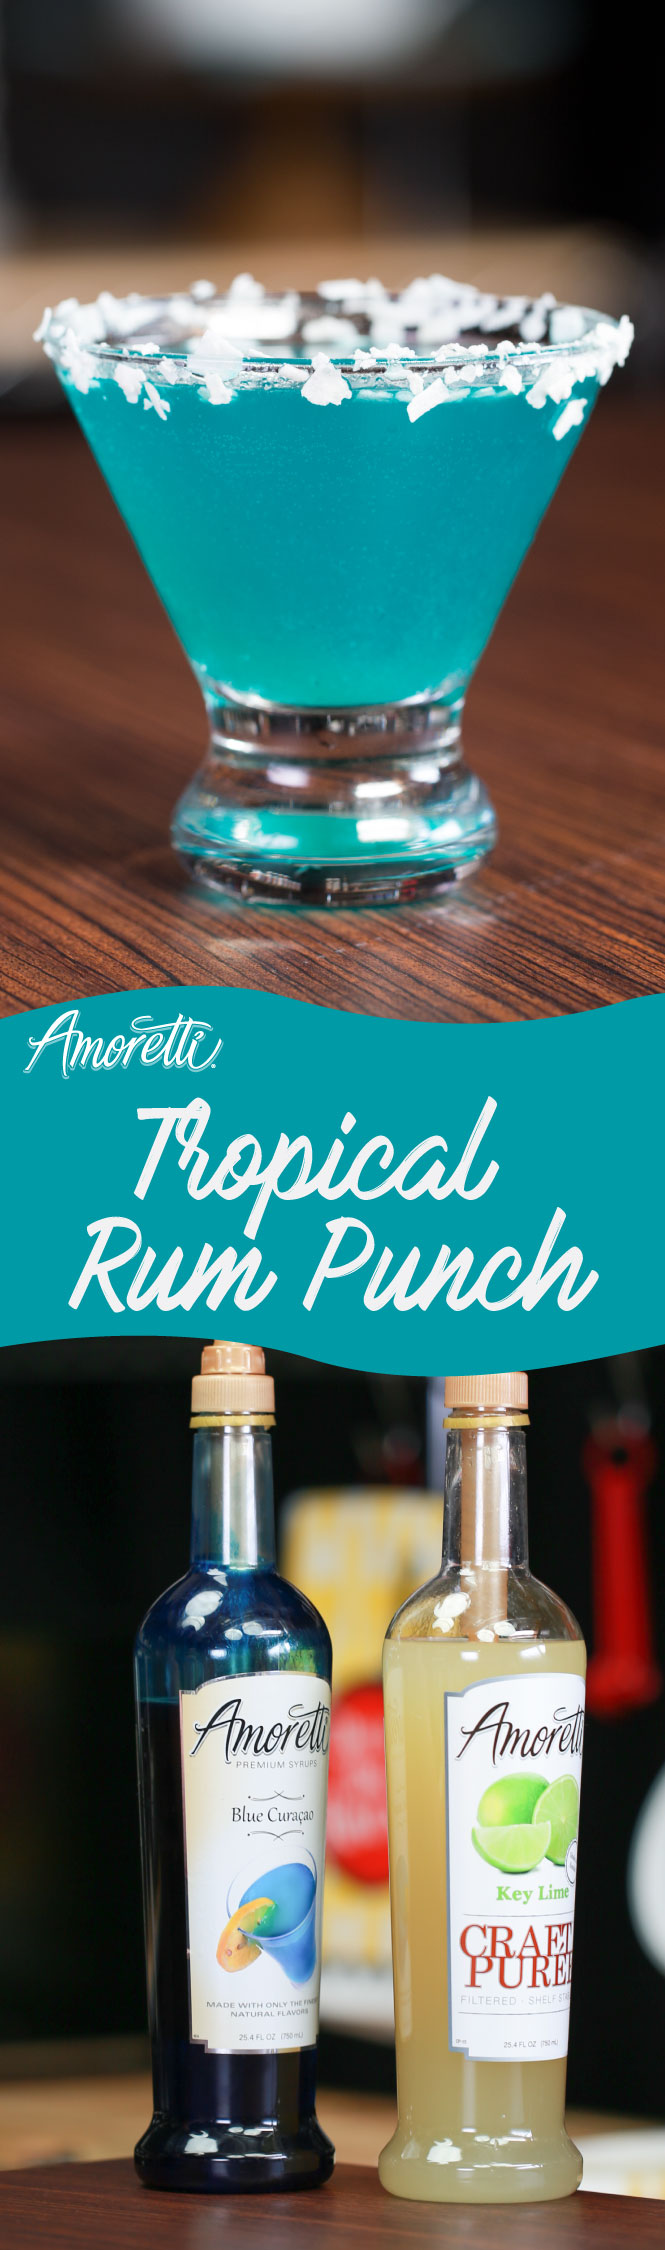 Sweet, fruity, and full of rum, our Tropical Rum Punch is the life of the party!